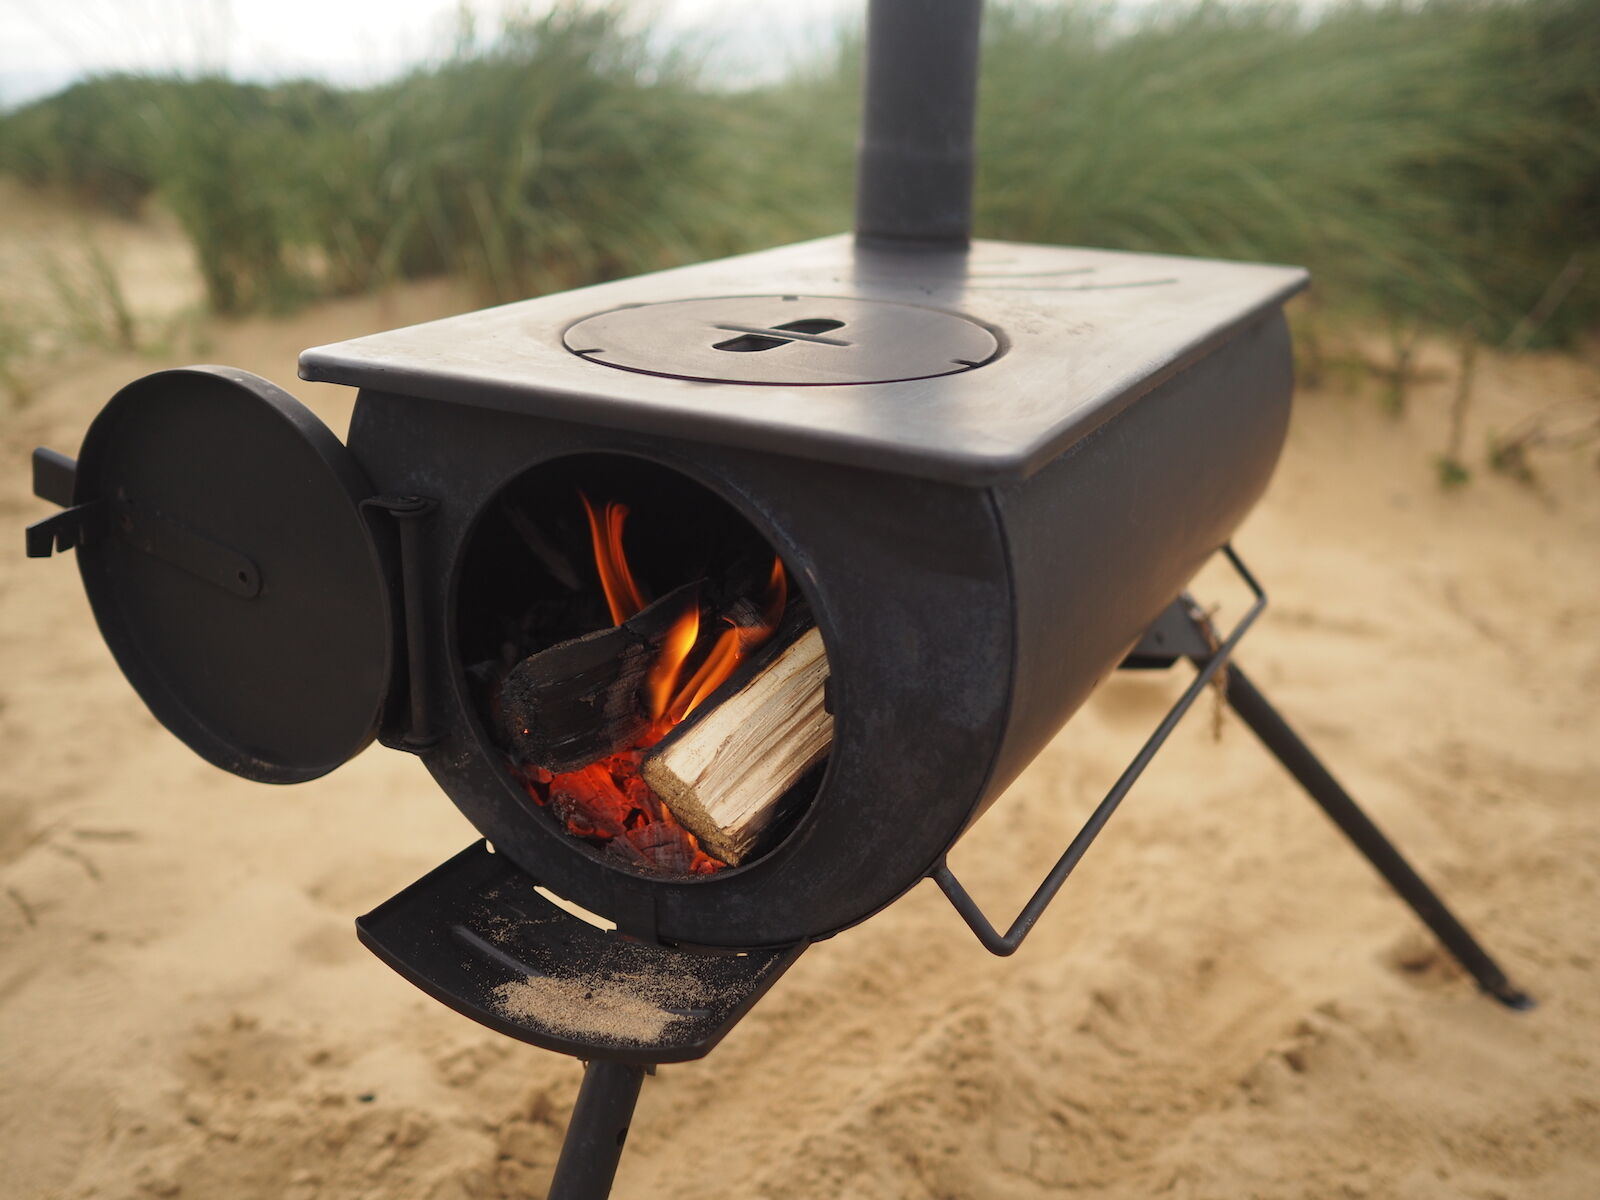 Outbacker 174 Portable Wood Burning Stove For Bell Tent